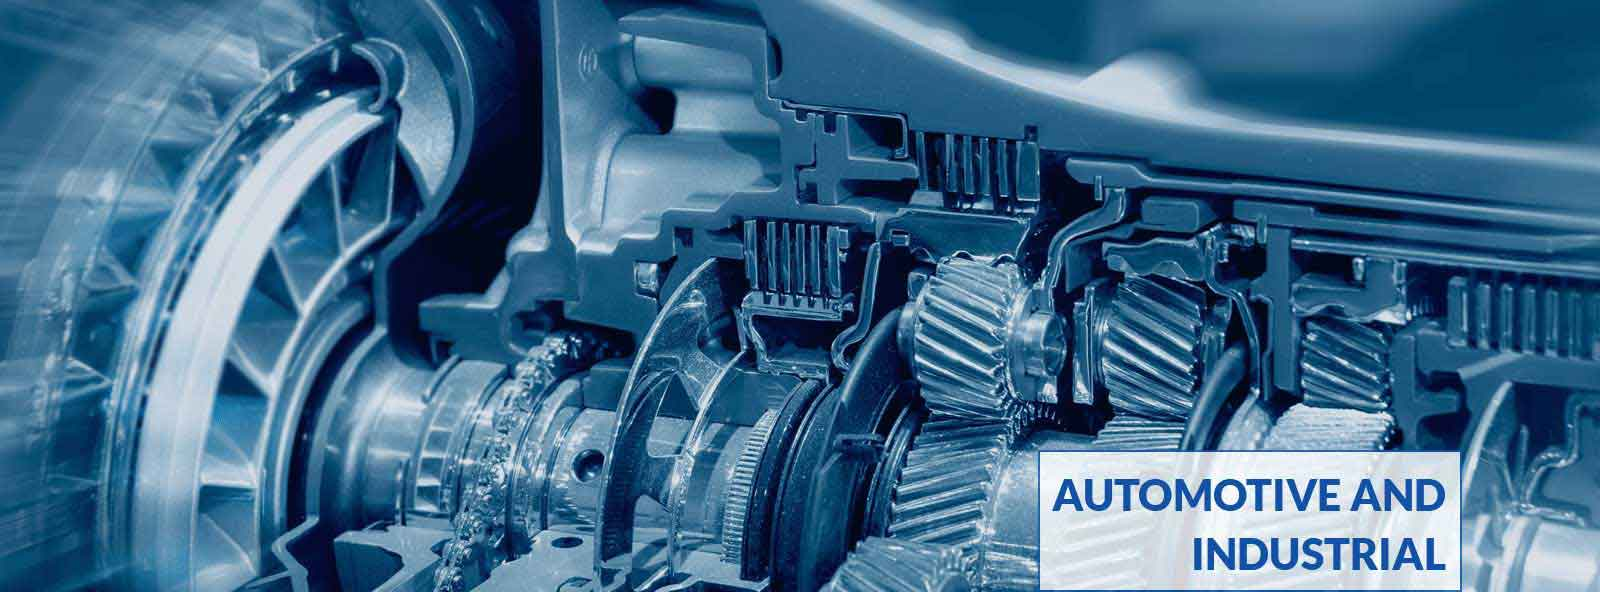 Automotive and Industrial Services